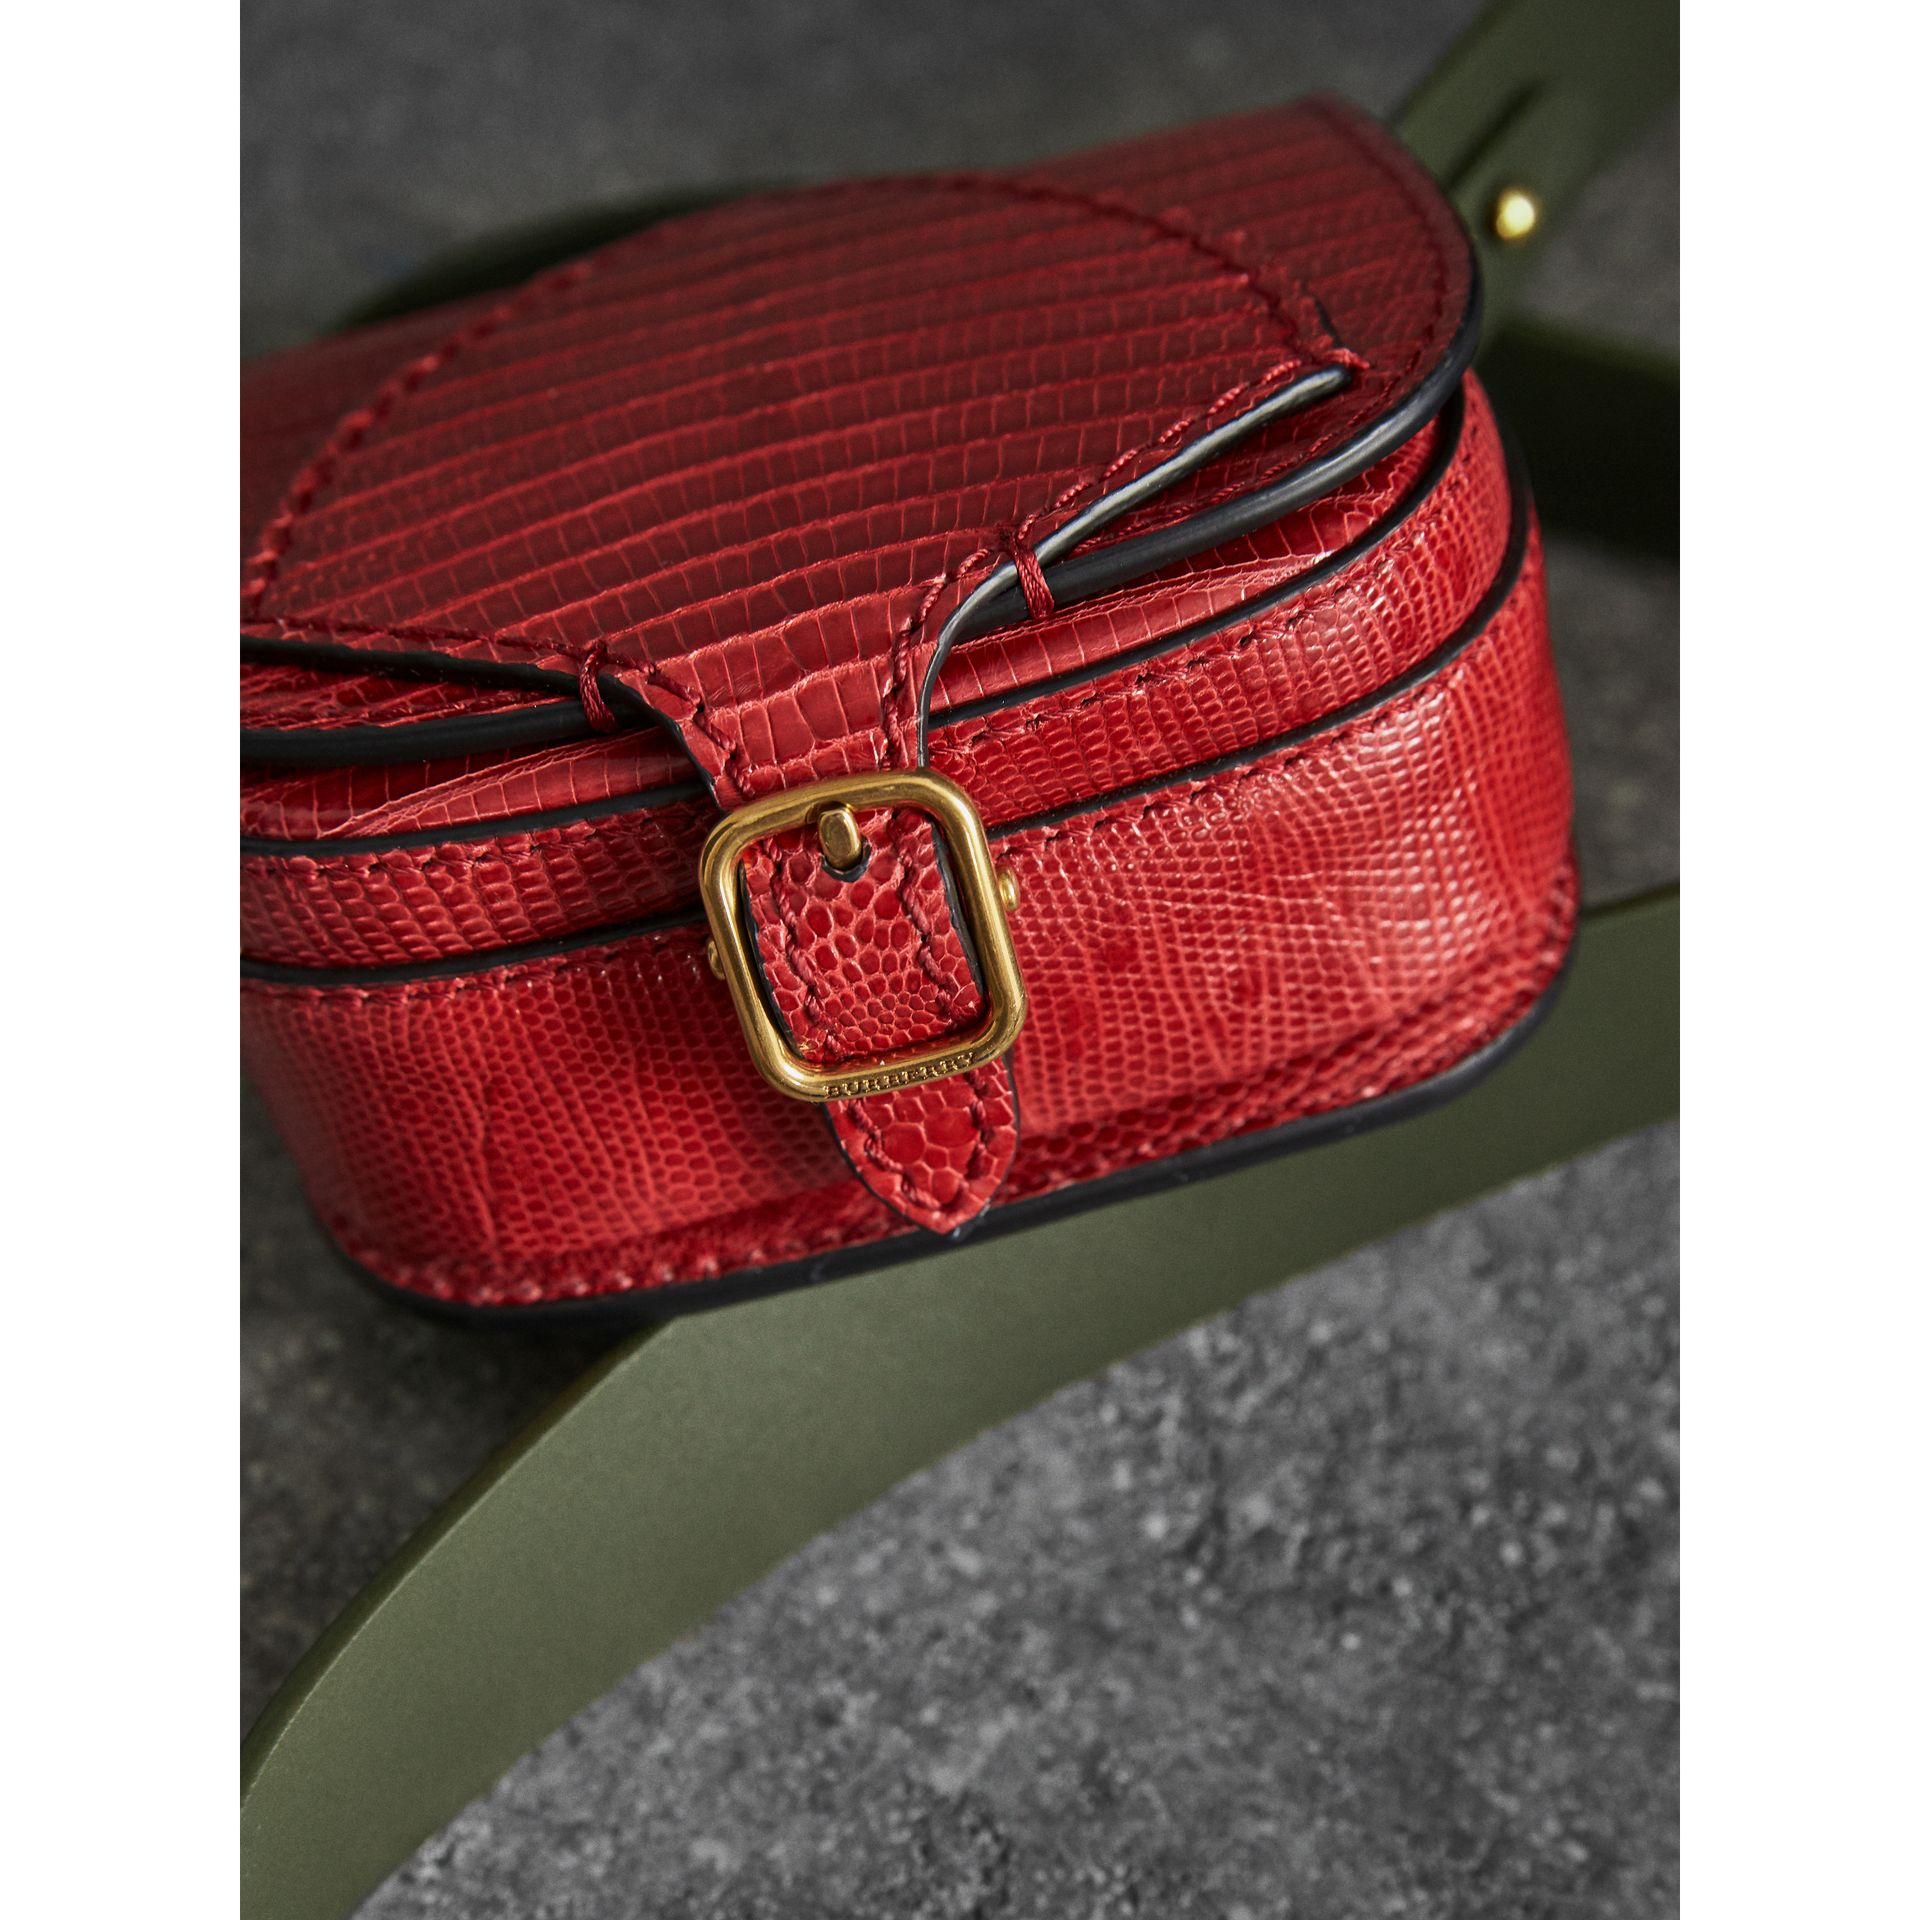 Mini sac The Satchel en lézard (Rouge Clou De Girofle) - Femme | Burberry - photo de la galerie 2